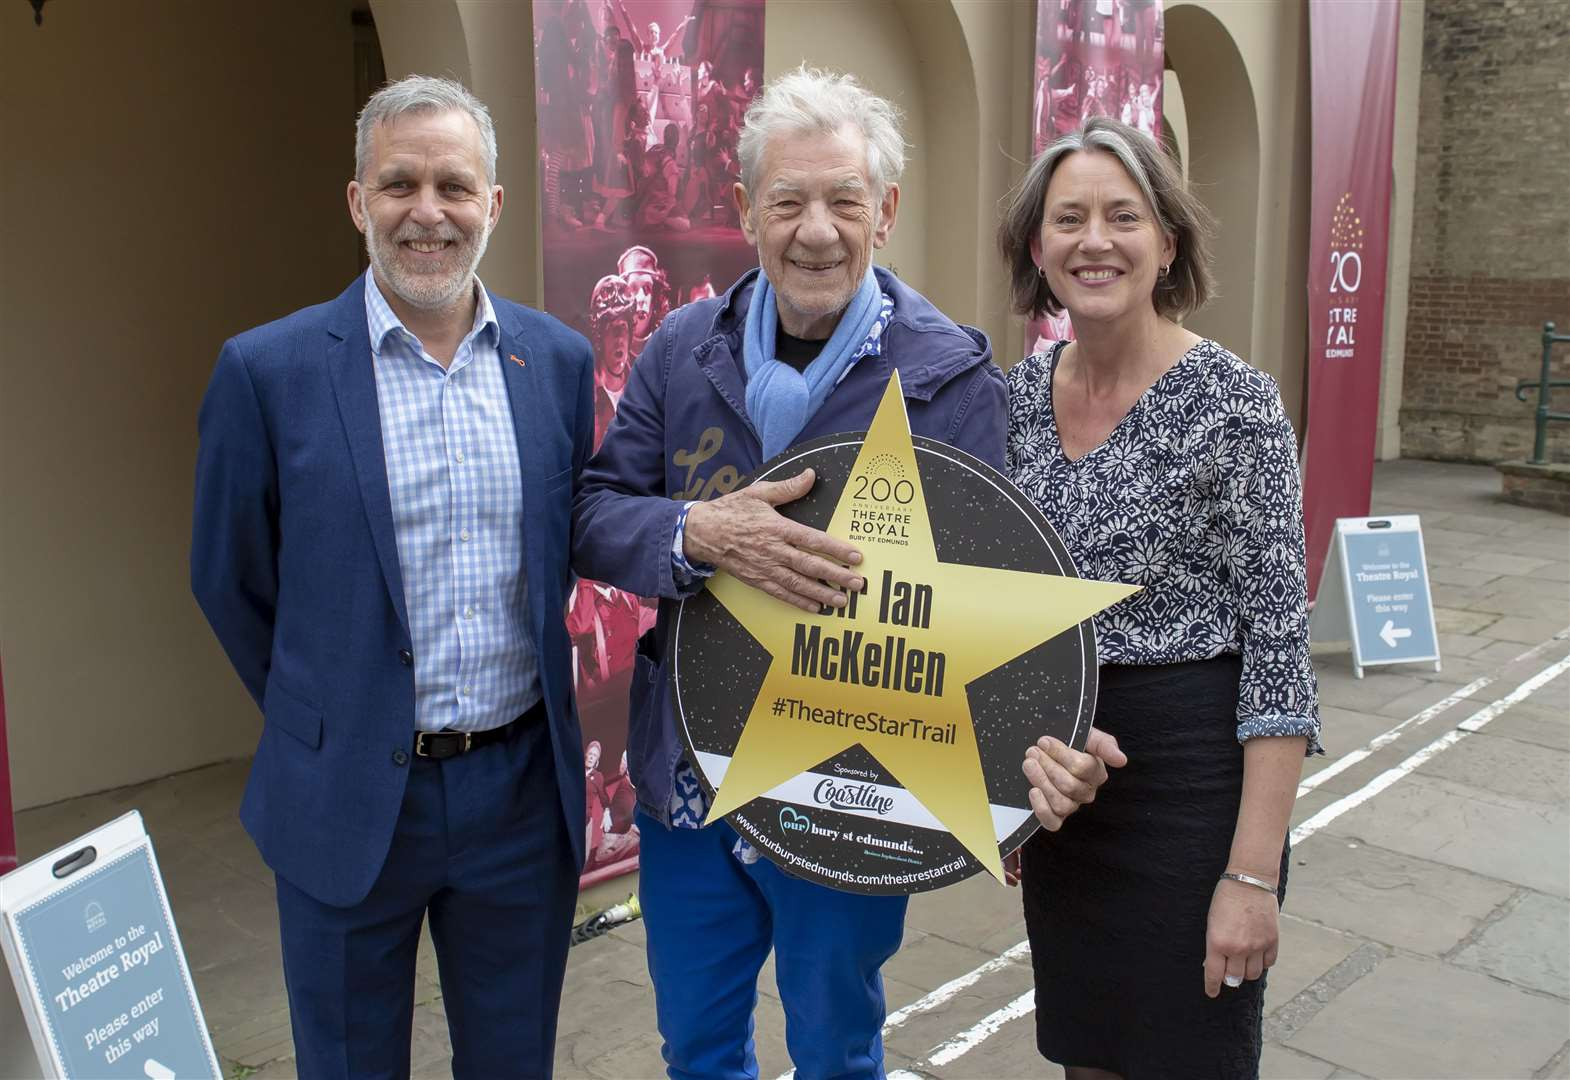 Thieves steal Bury St Edmunds theatre trail stars including Sir Ian McKellen's